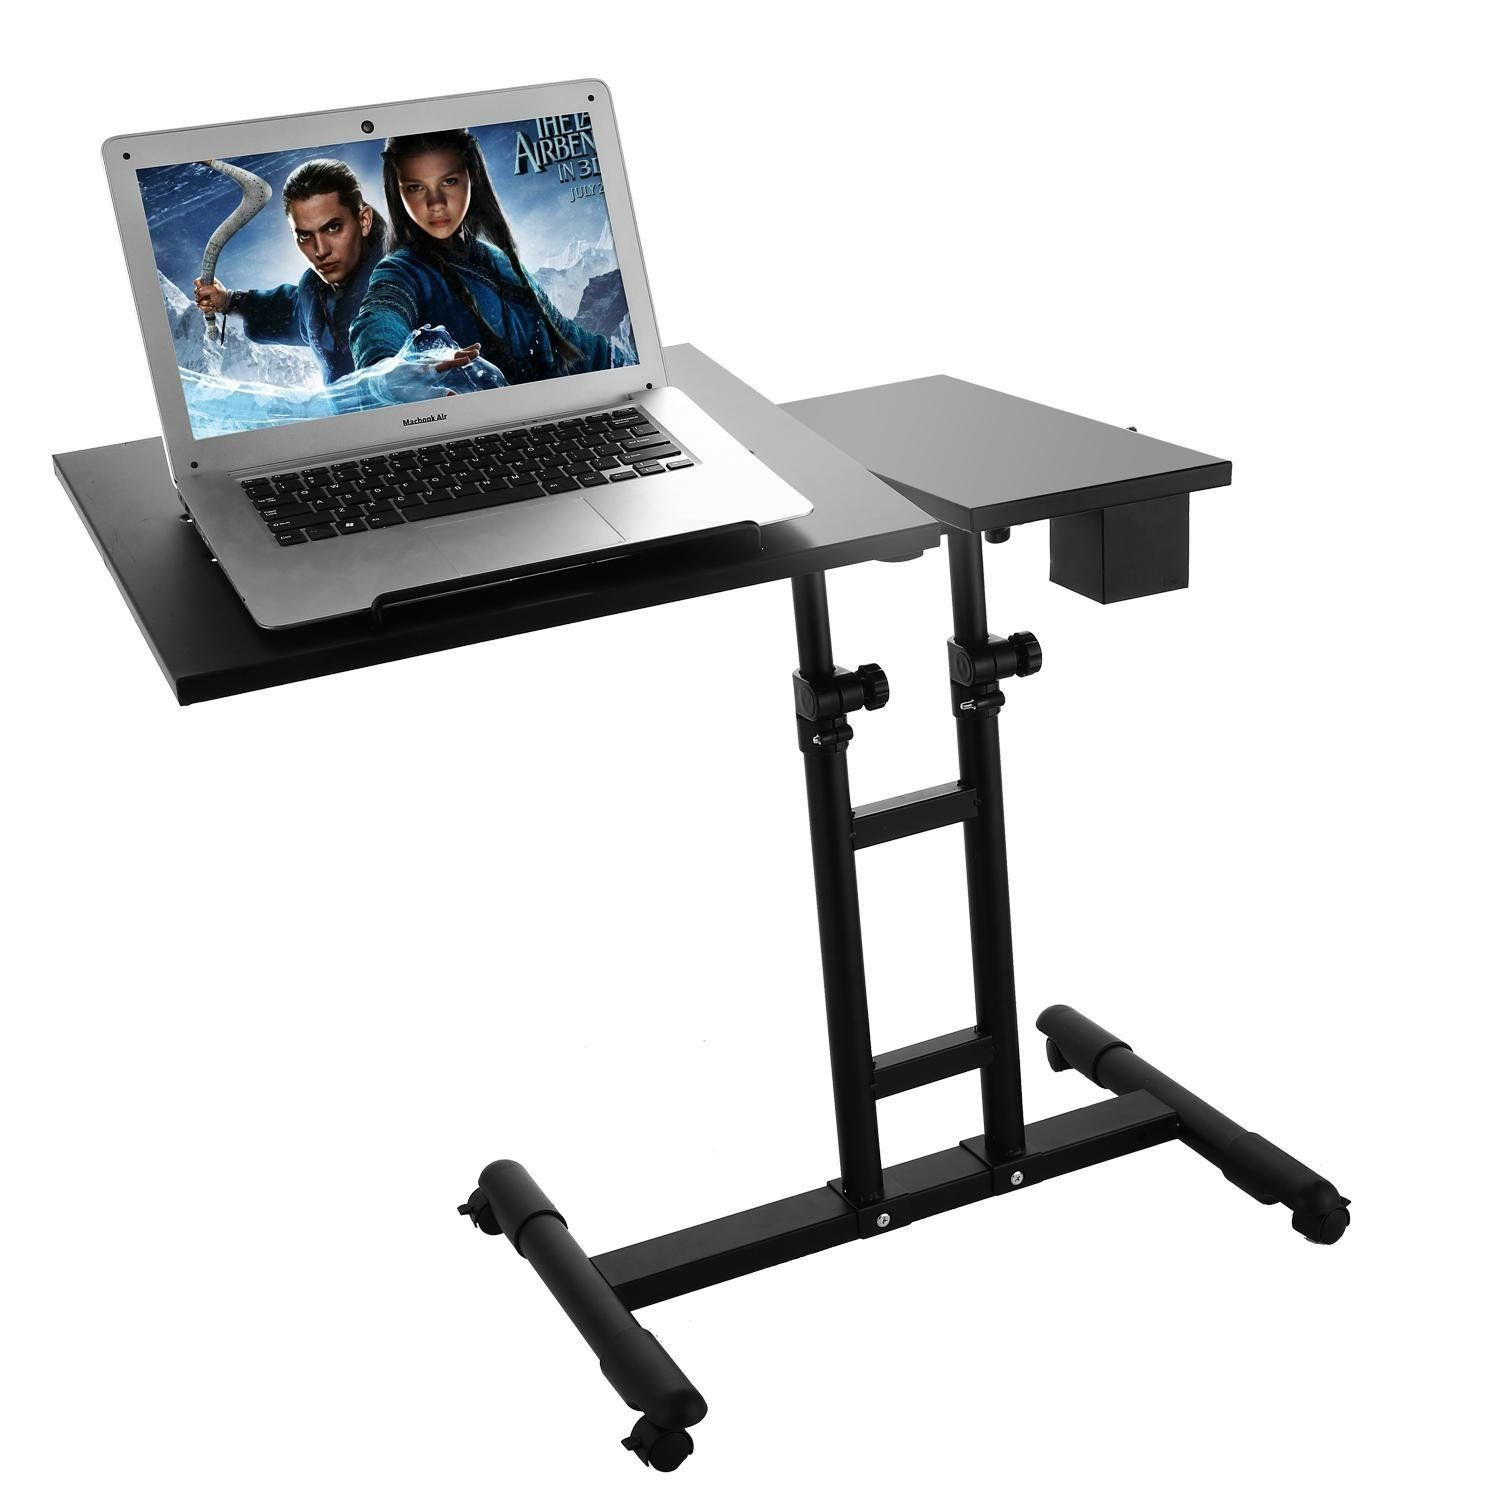 Adjustable Height Portable Laptop Desk Black Sofa Bedside Table With Wheels Click Image To Review More Details A In 2020 Portable Laptop Desk Black Desk Black Sofa